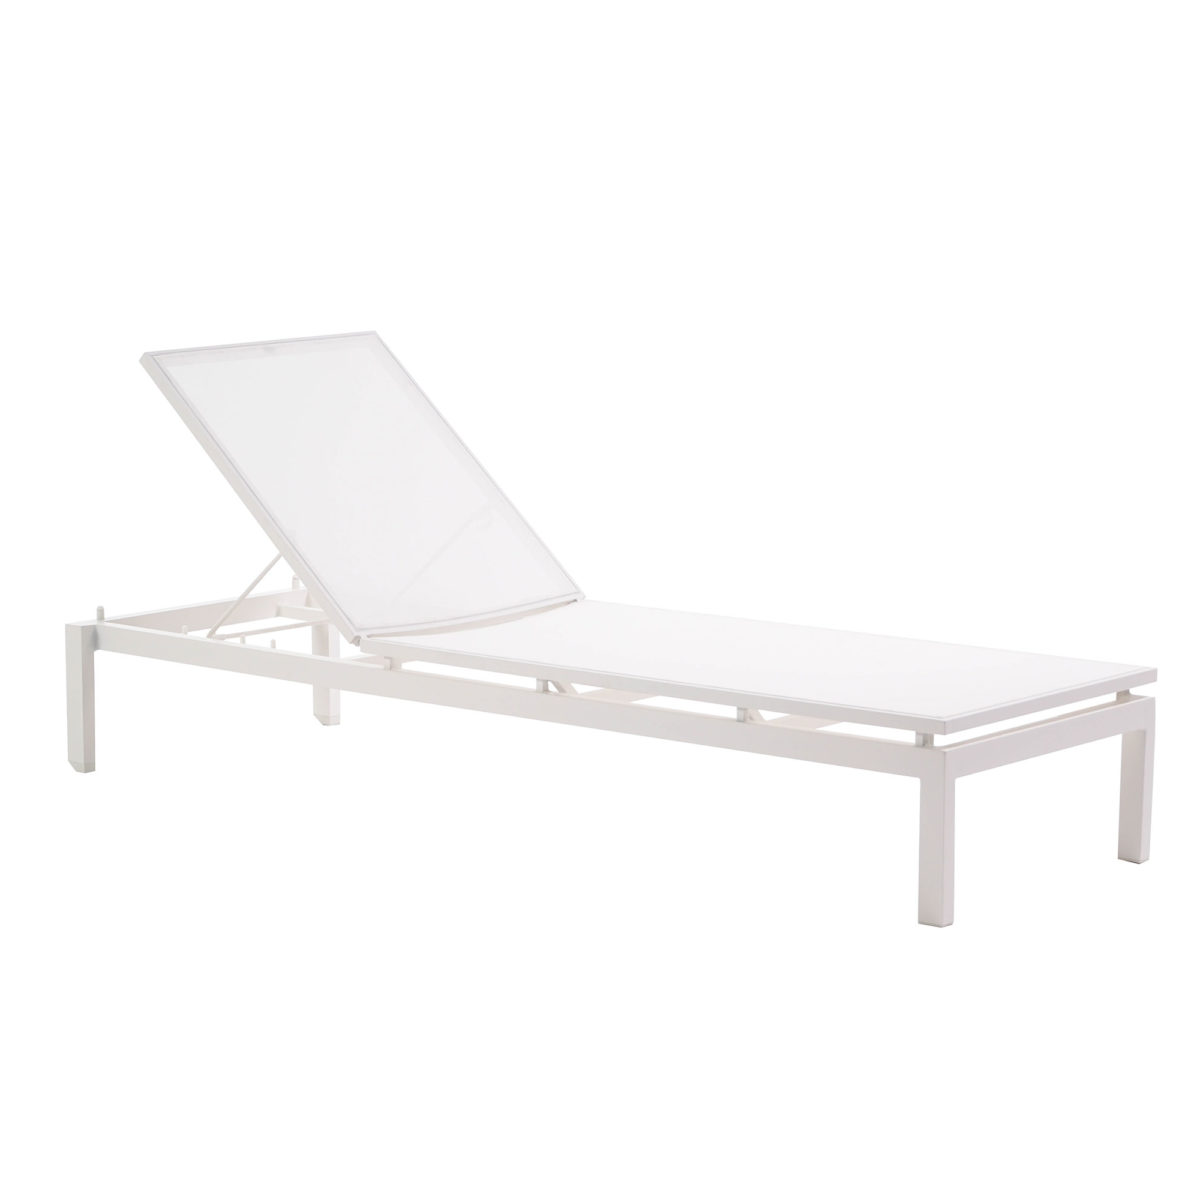 Toscana lounger white